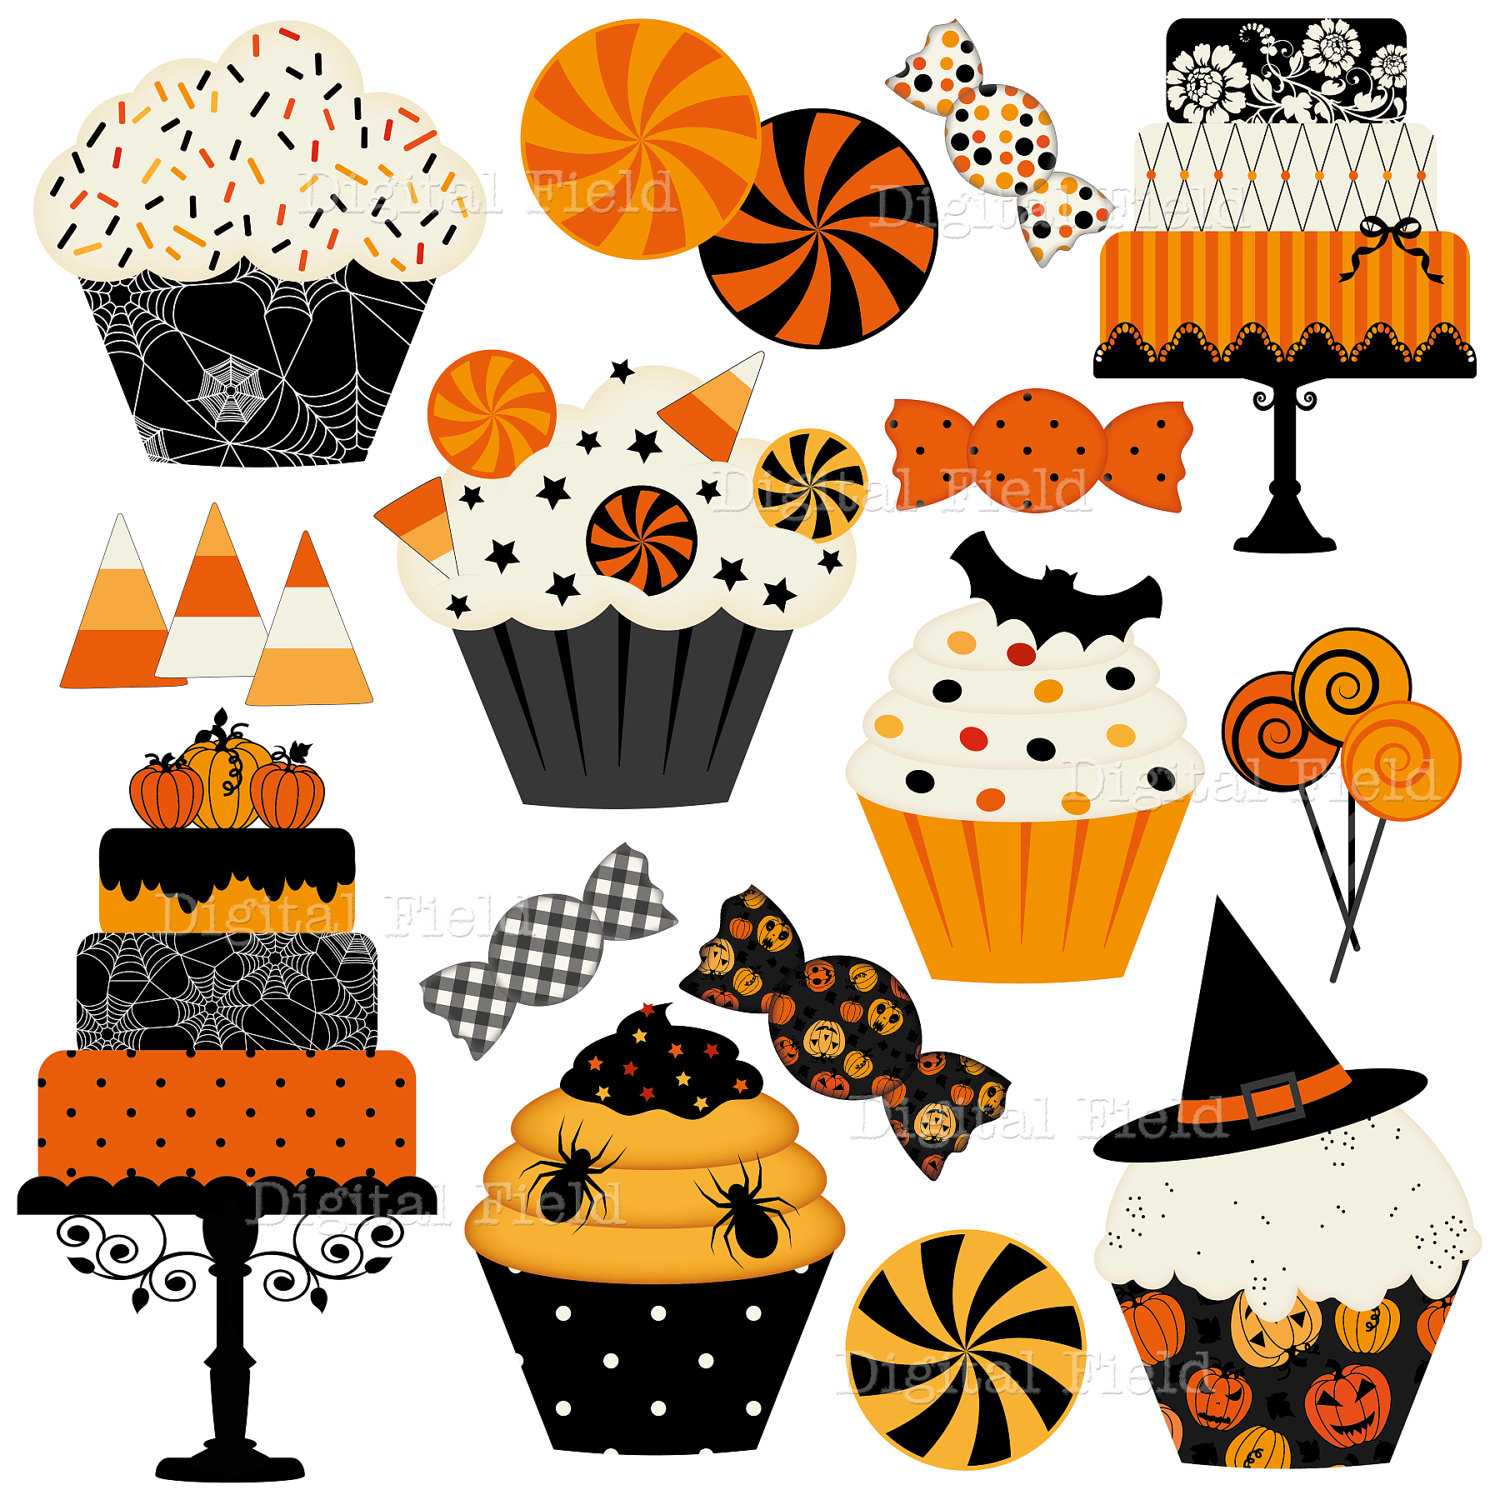 Clipart halloween baked goods. Free cool images download